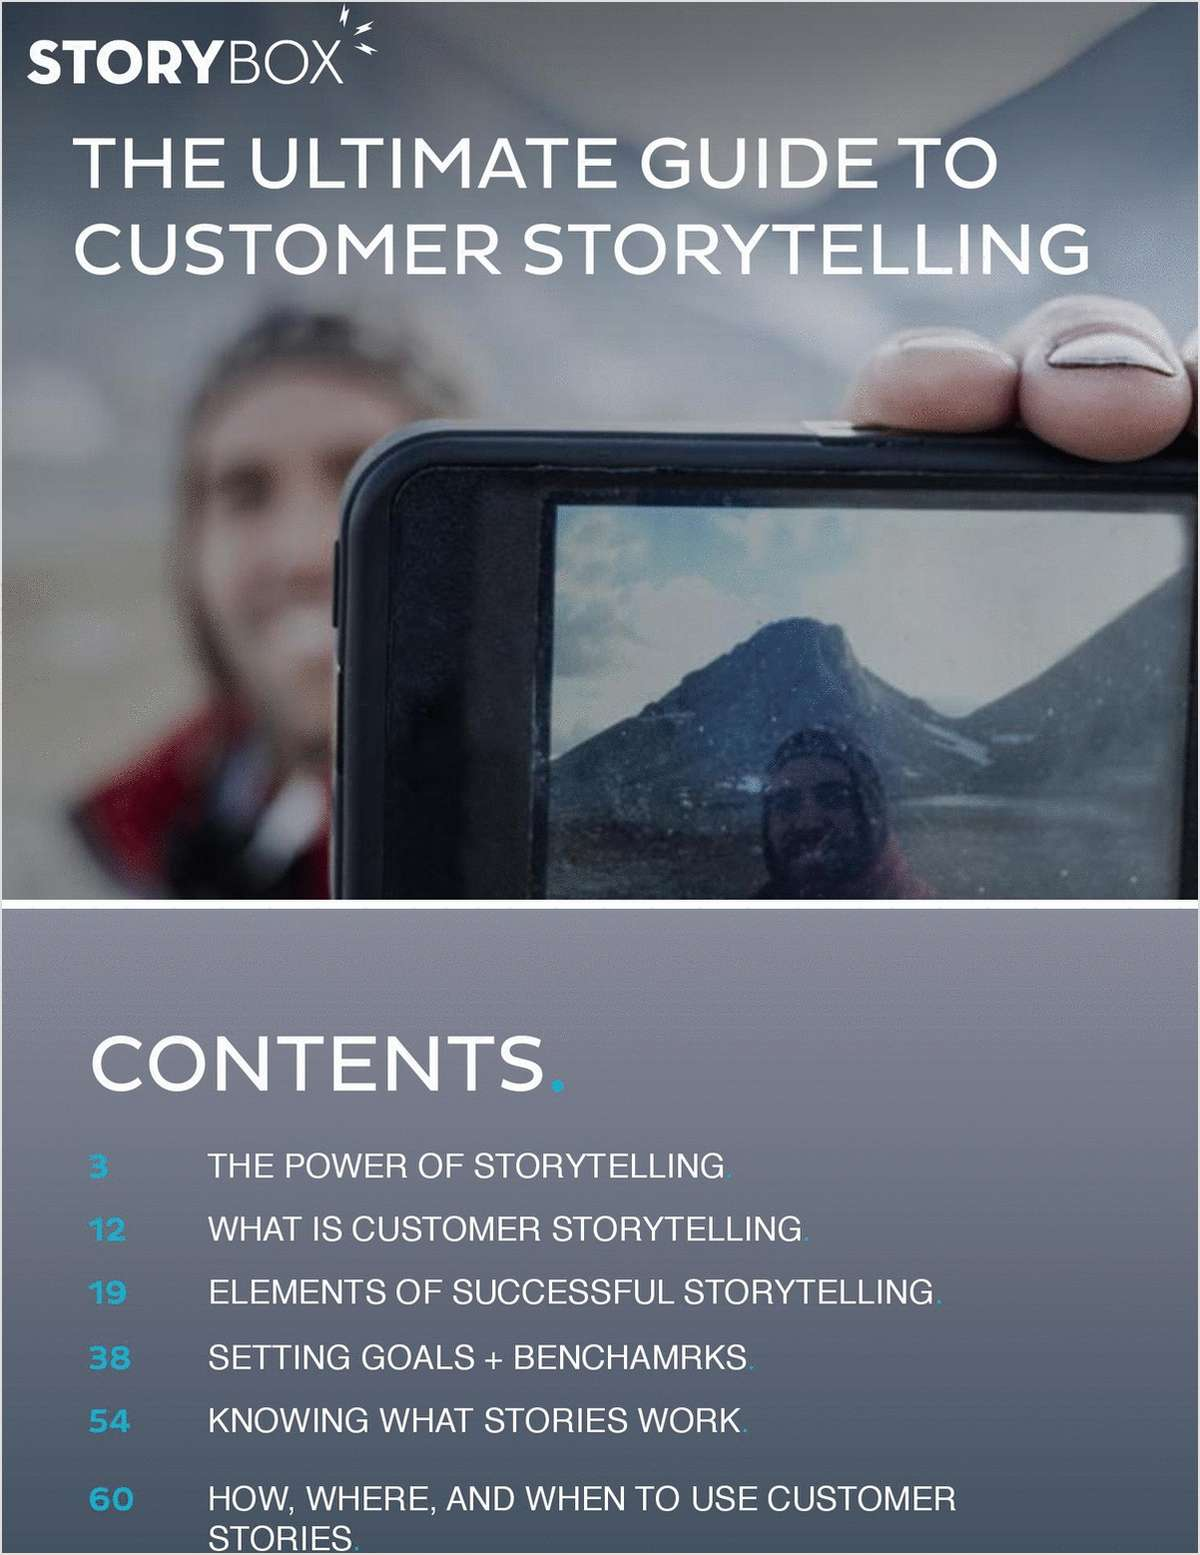 The Ultimate Guide to Customer Storytelling